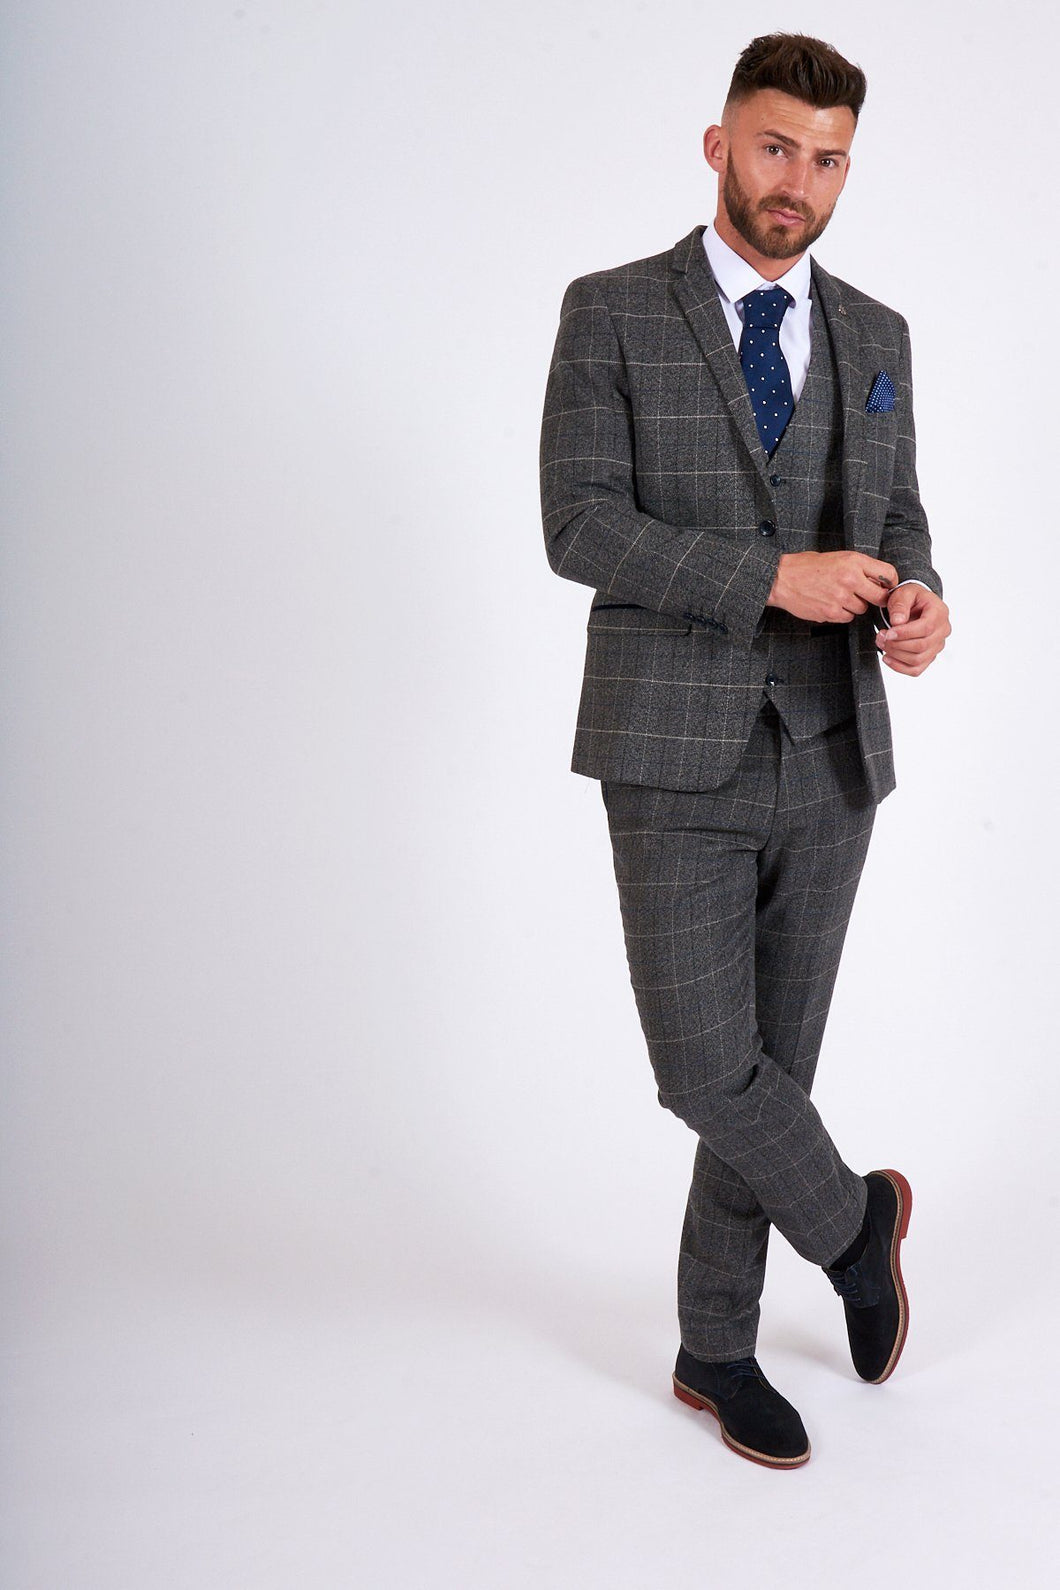 Marc Darcy: SCOTT - Grey Tweed Check Three Piece Suit - Gilt Edged